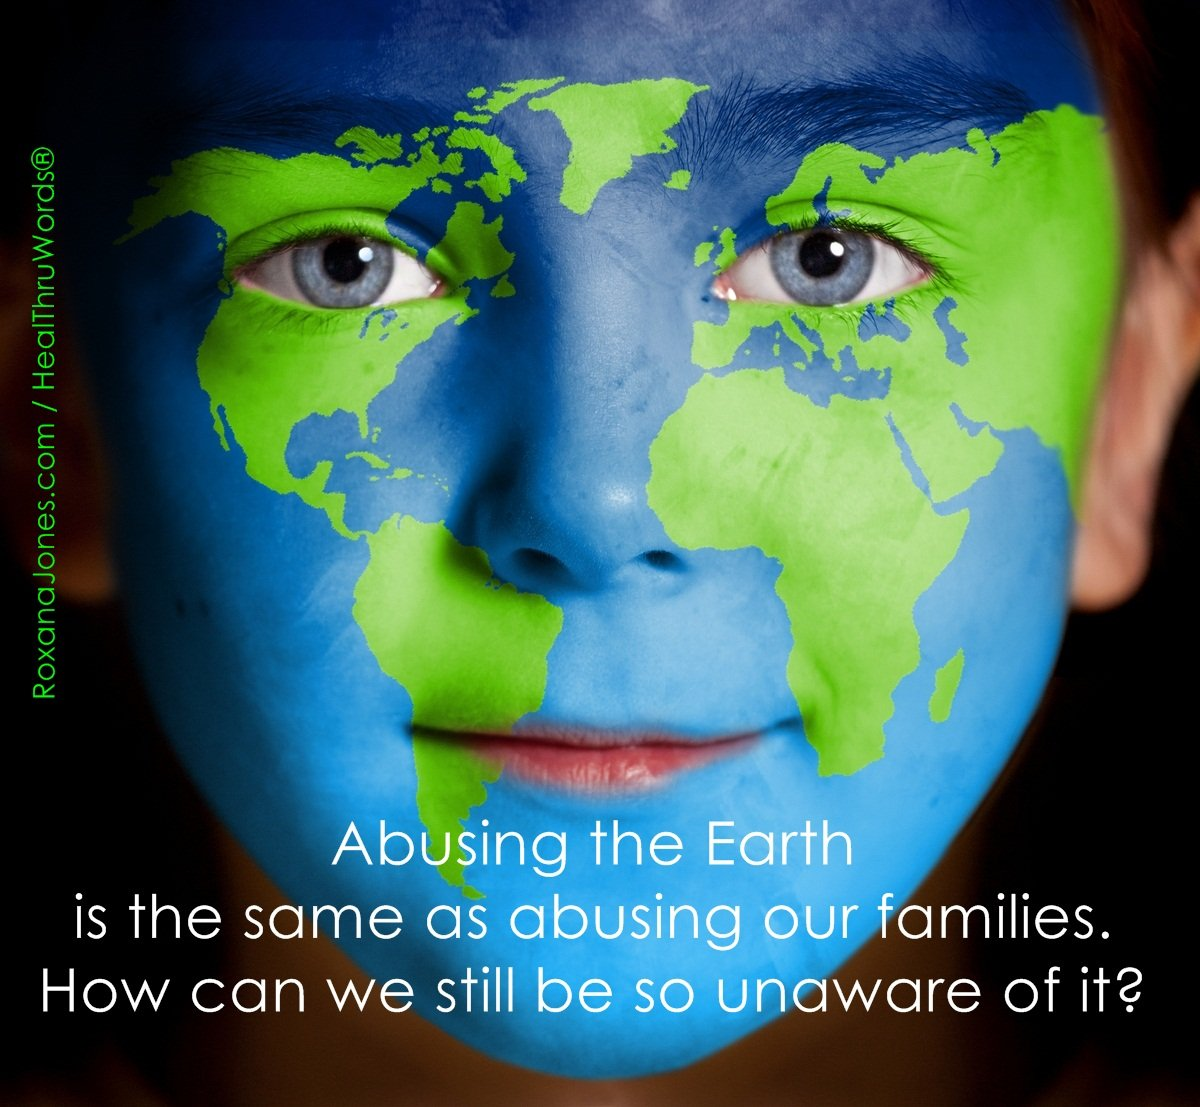 Inspirational Image: Earth Day Question